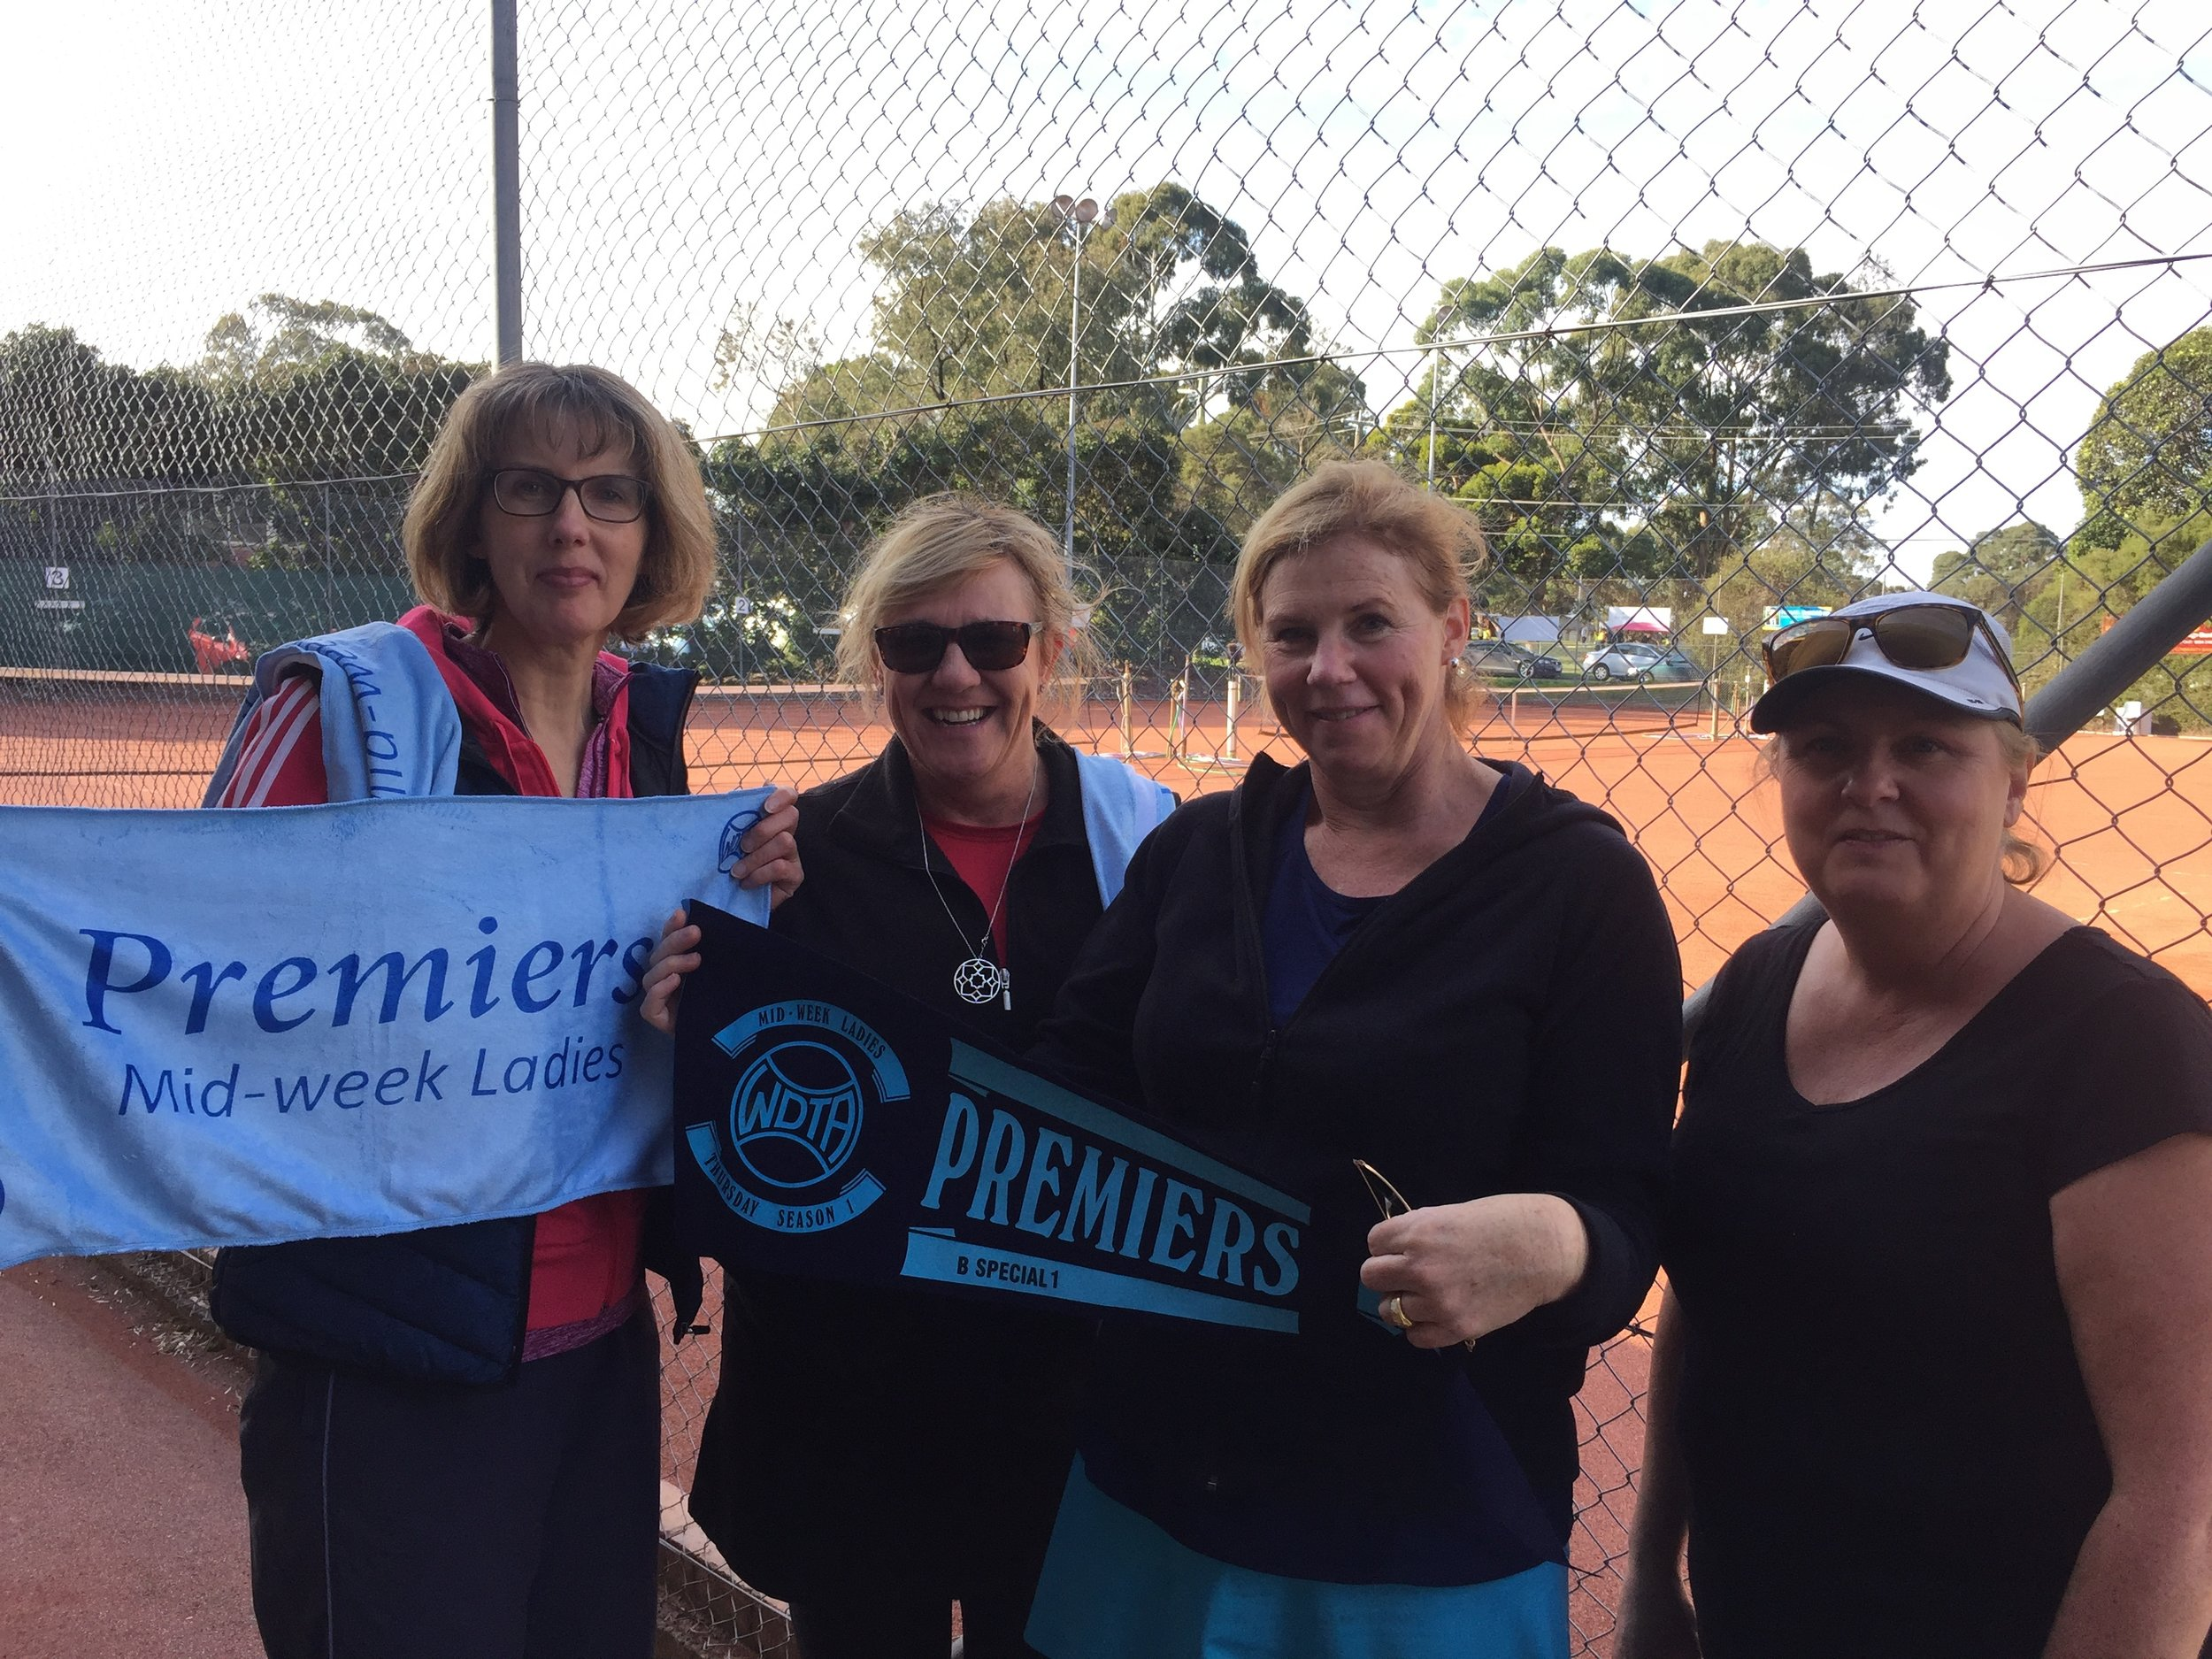 WDTA B Special 1 Premiers - Autumn 2017  Catherine Gonsalves, Cathy King, Anne Nunan, Julie Cox (Absent - Leanne Carroll)  Congratulations ladies